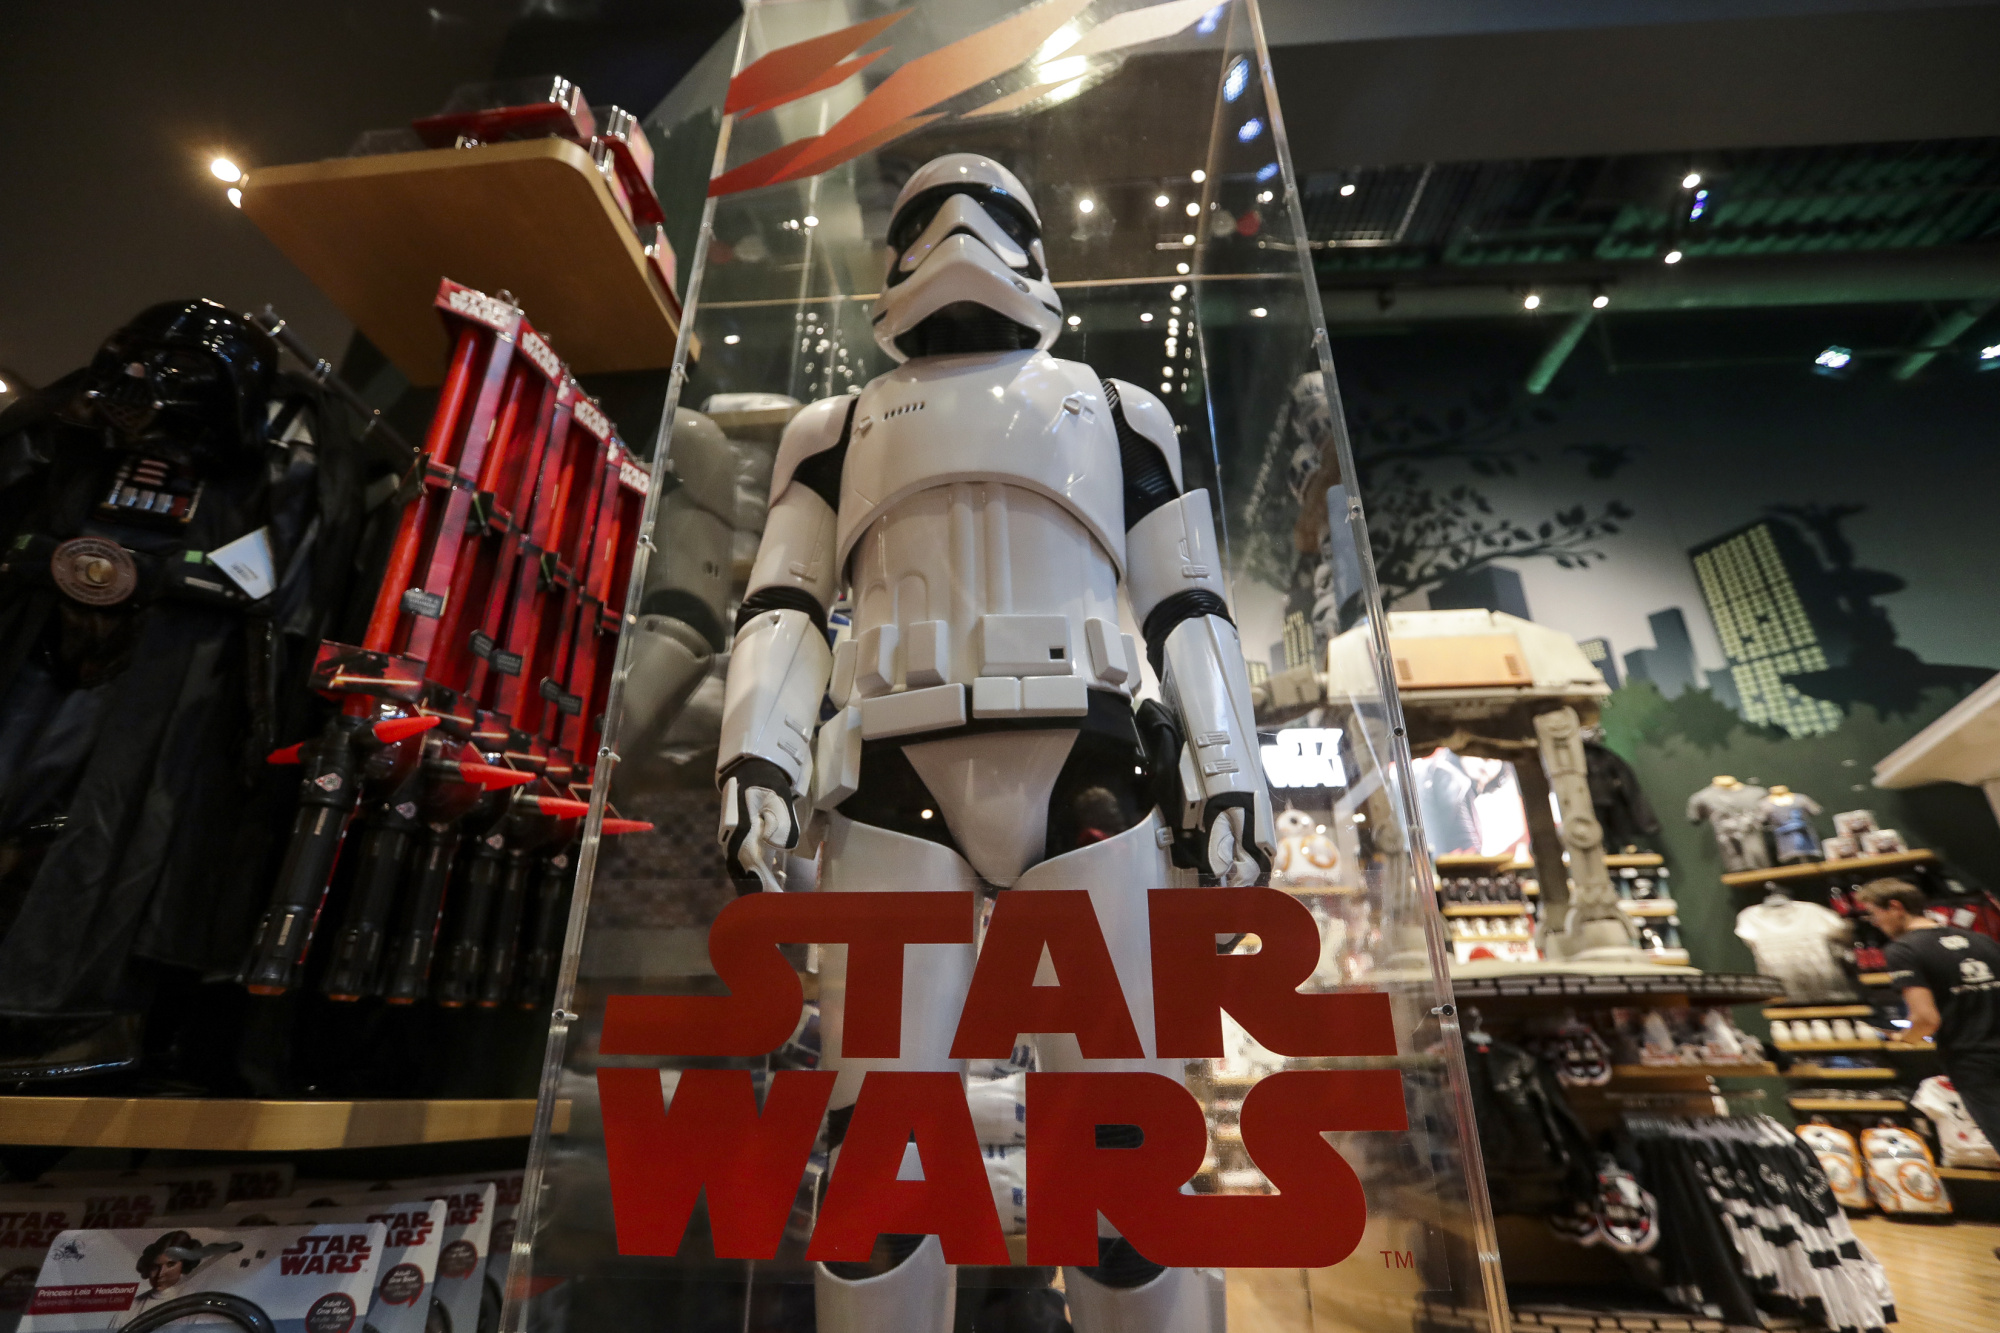 """Inside The """"Star Wars:The Last Jedi"""" Event And Product Debut At The Walt Disney Co. Store"""